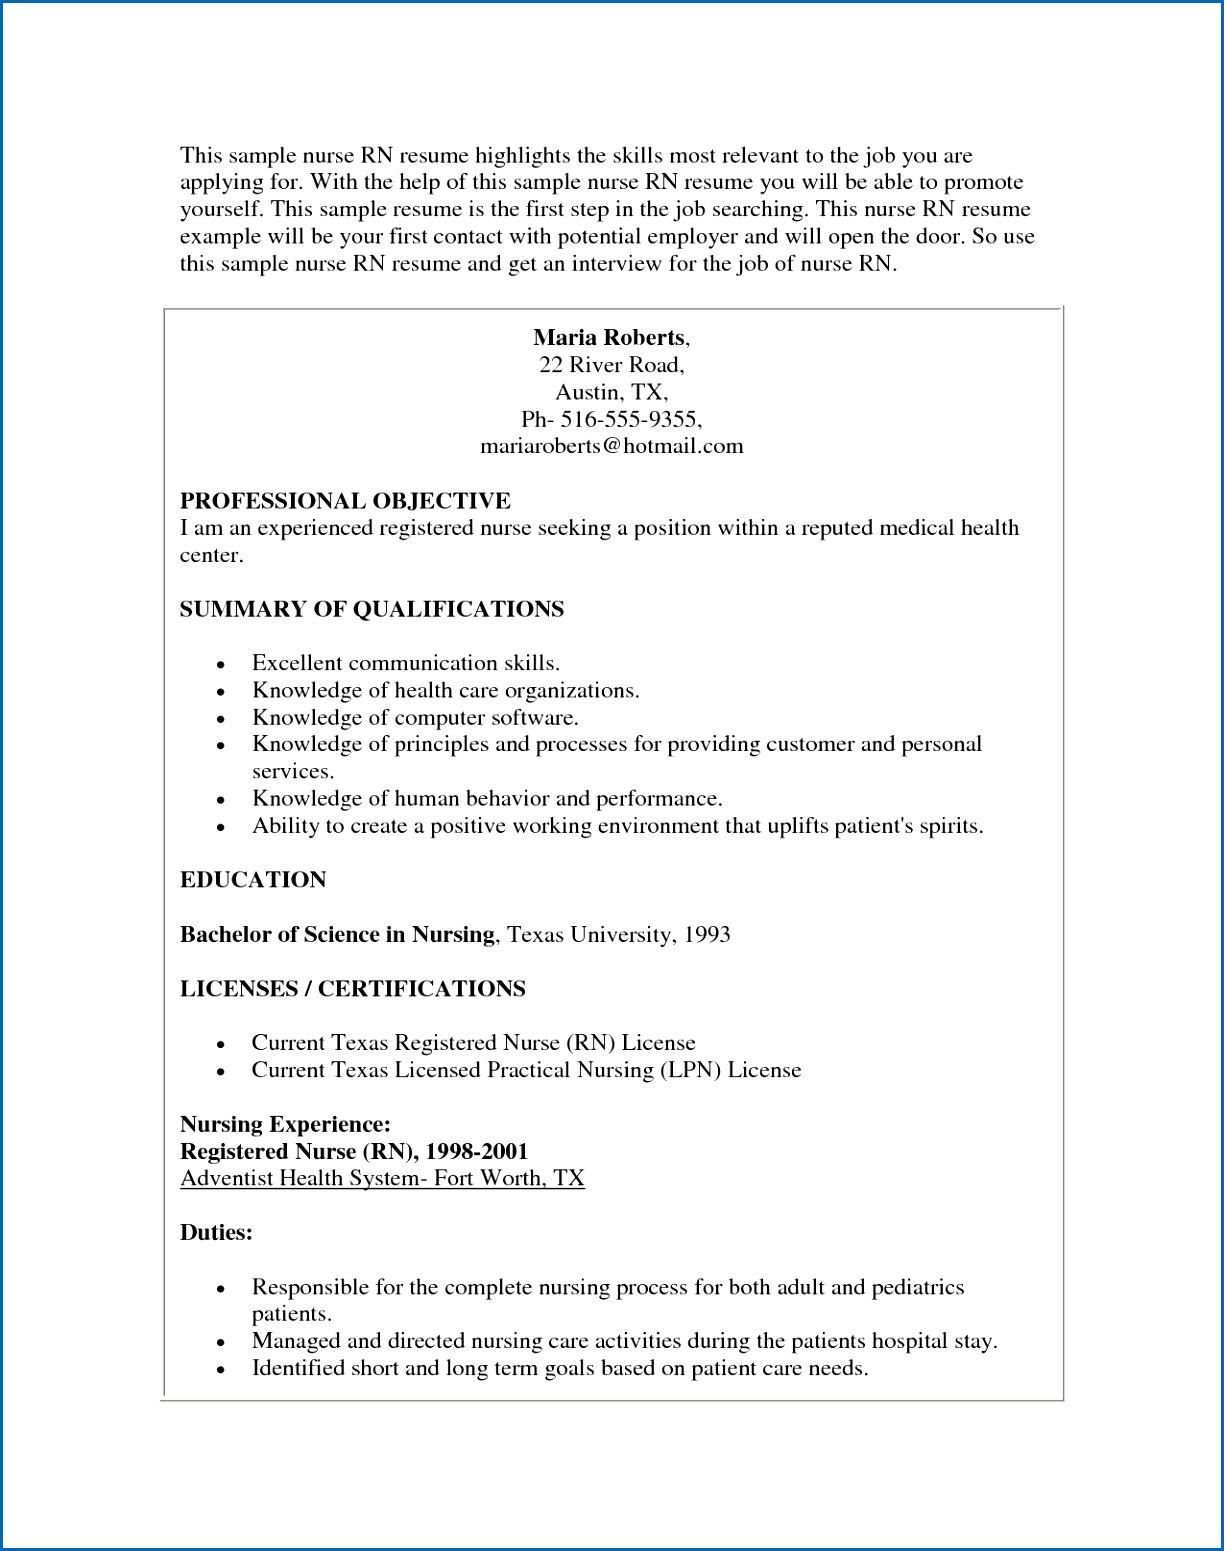 Medical Surgical Nurse Resume - Nursing Skills Resume Awesome Nursing Resume Lovely Rn Bsn Resume